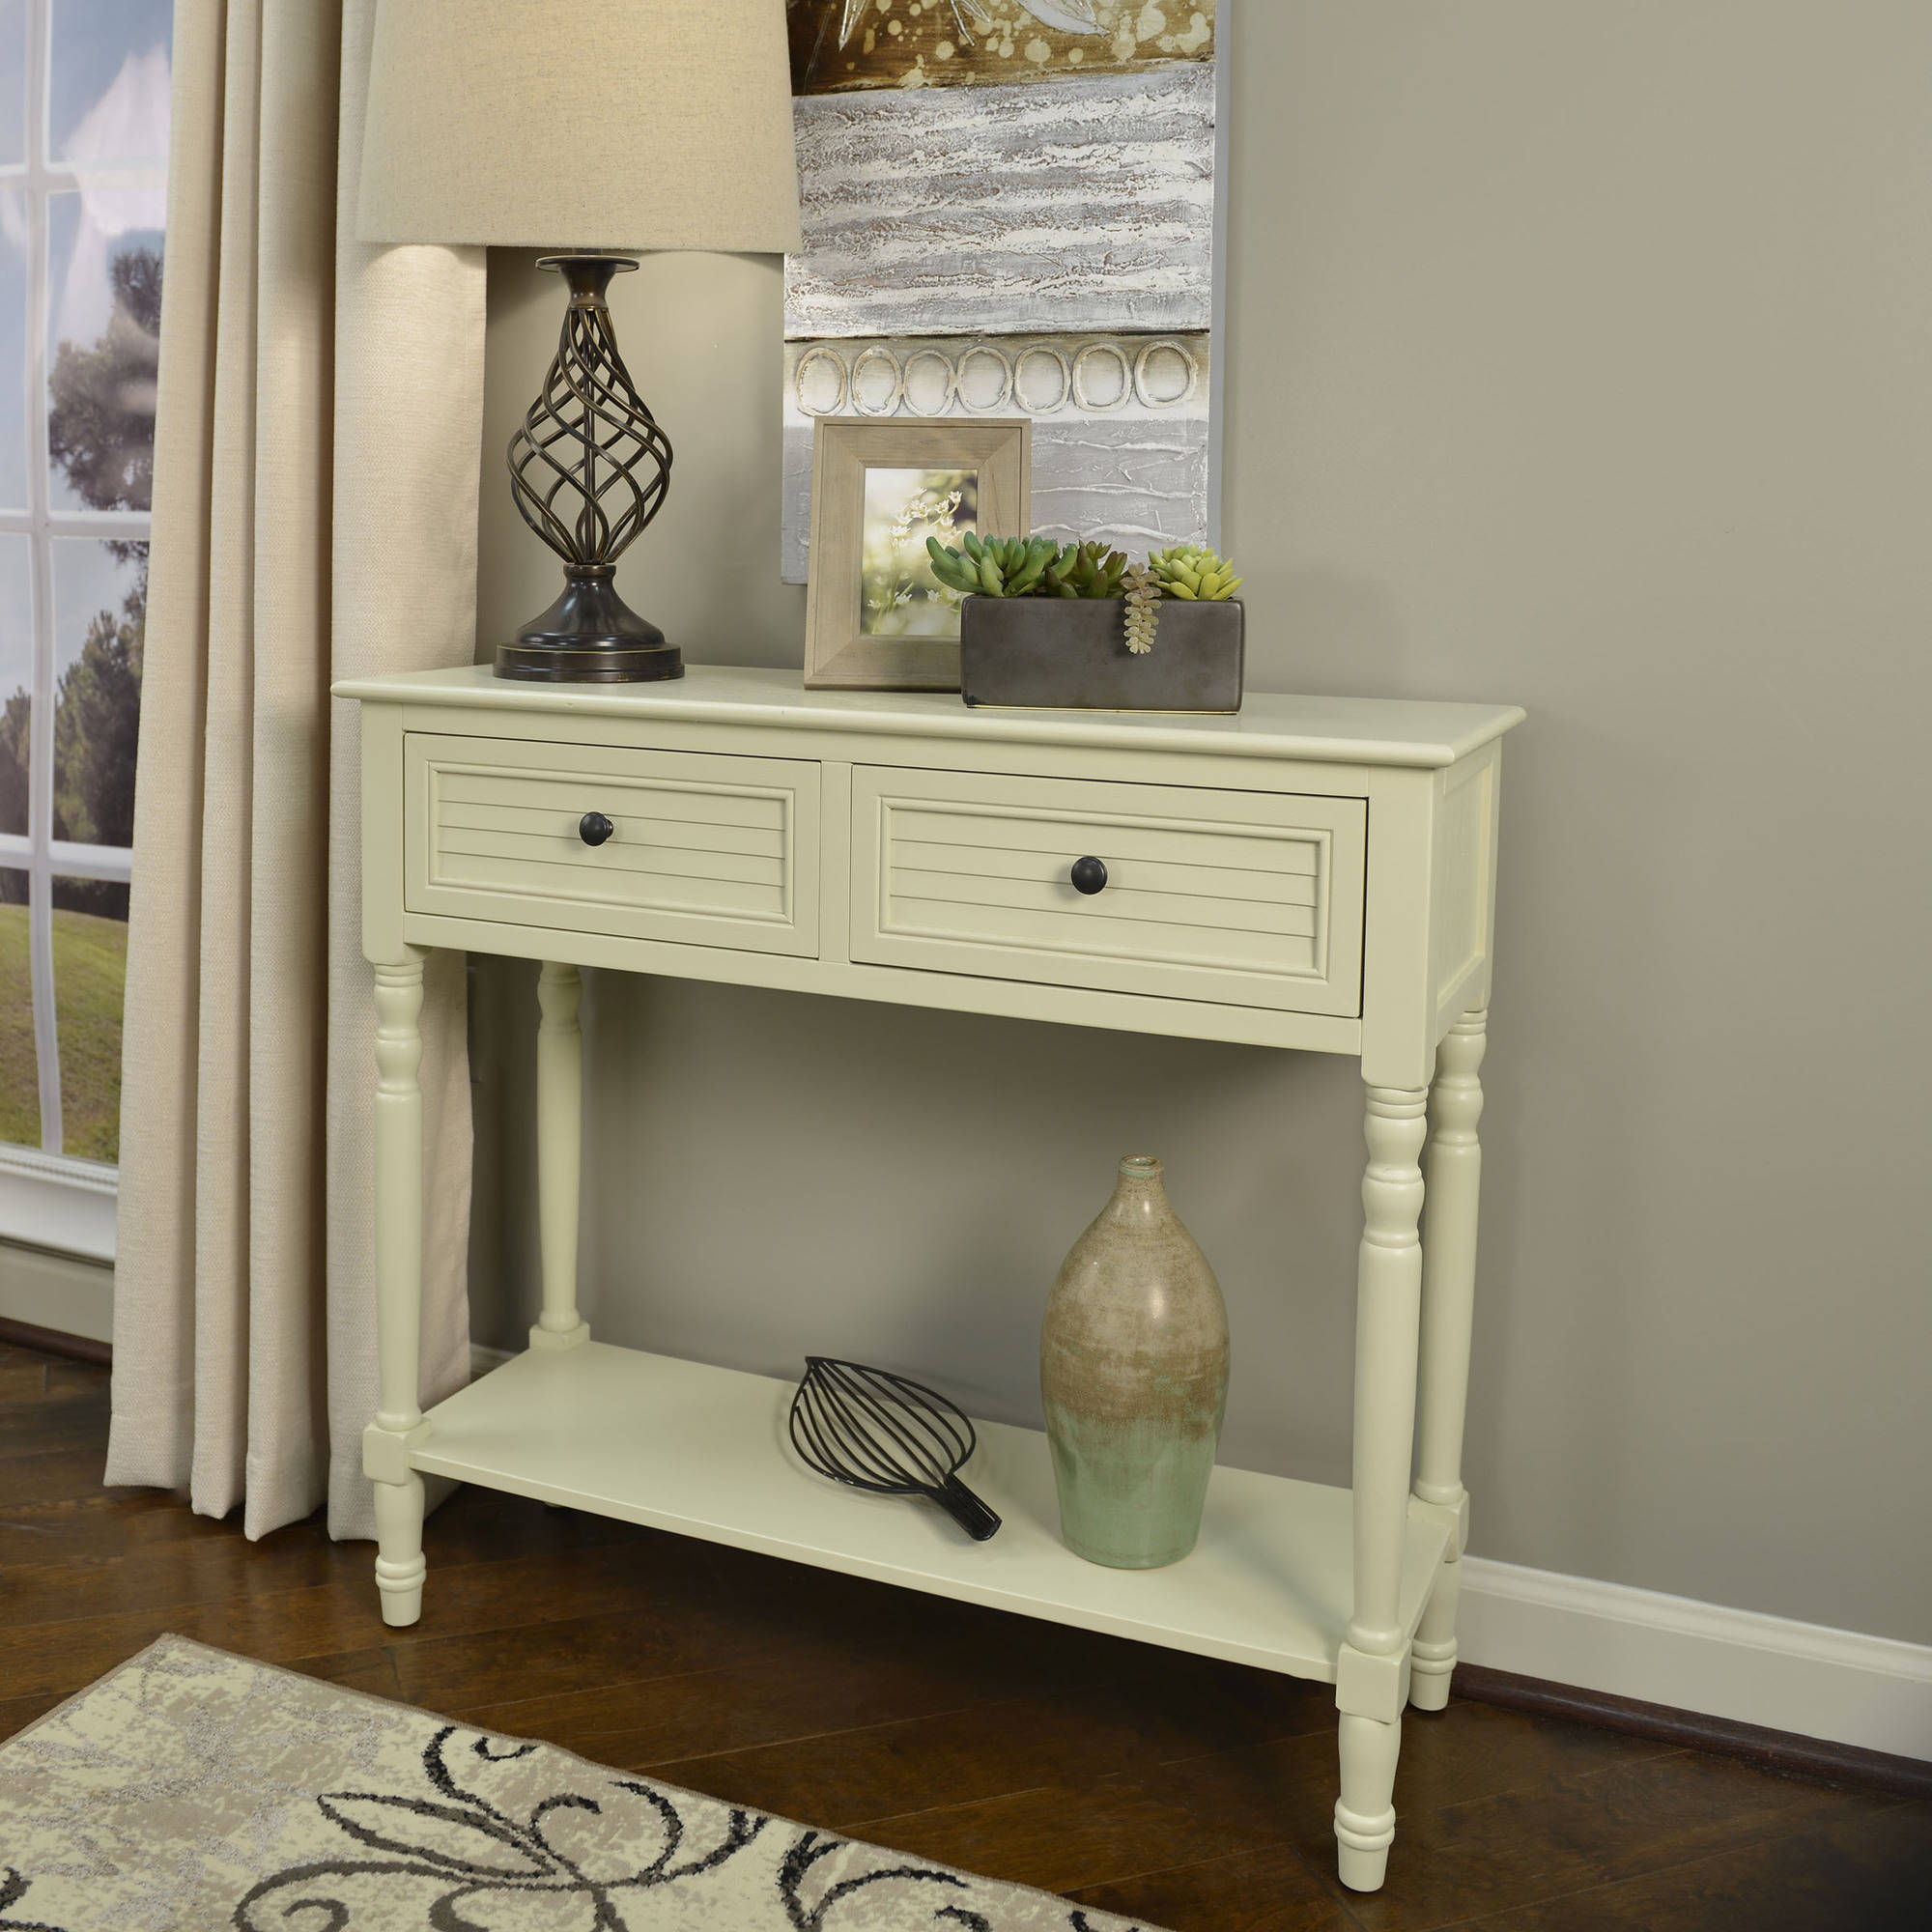 Better homes and gardens shutter 2 drawer console table multiple better homes and gardens shutter 2 drawer console table multiple colors walmart geotapseo Gallery